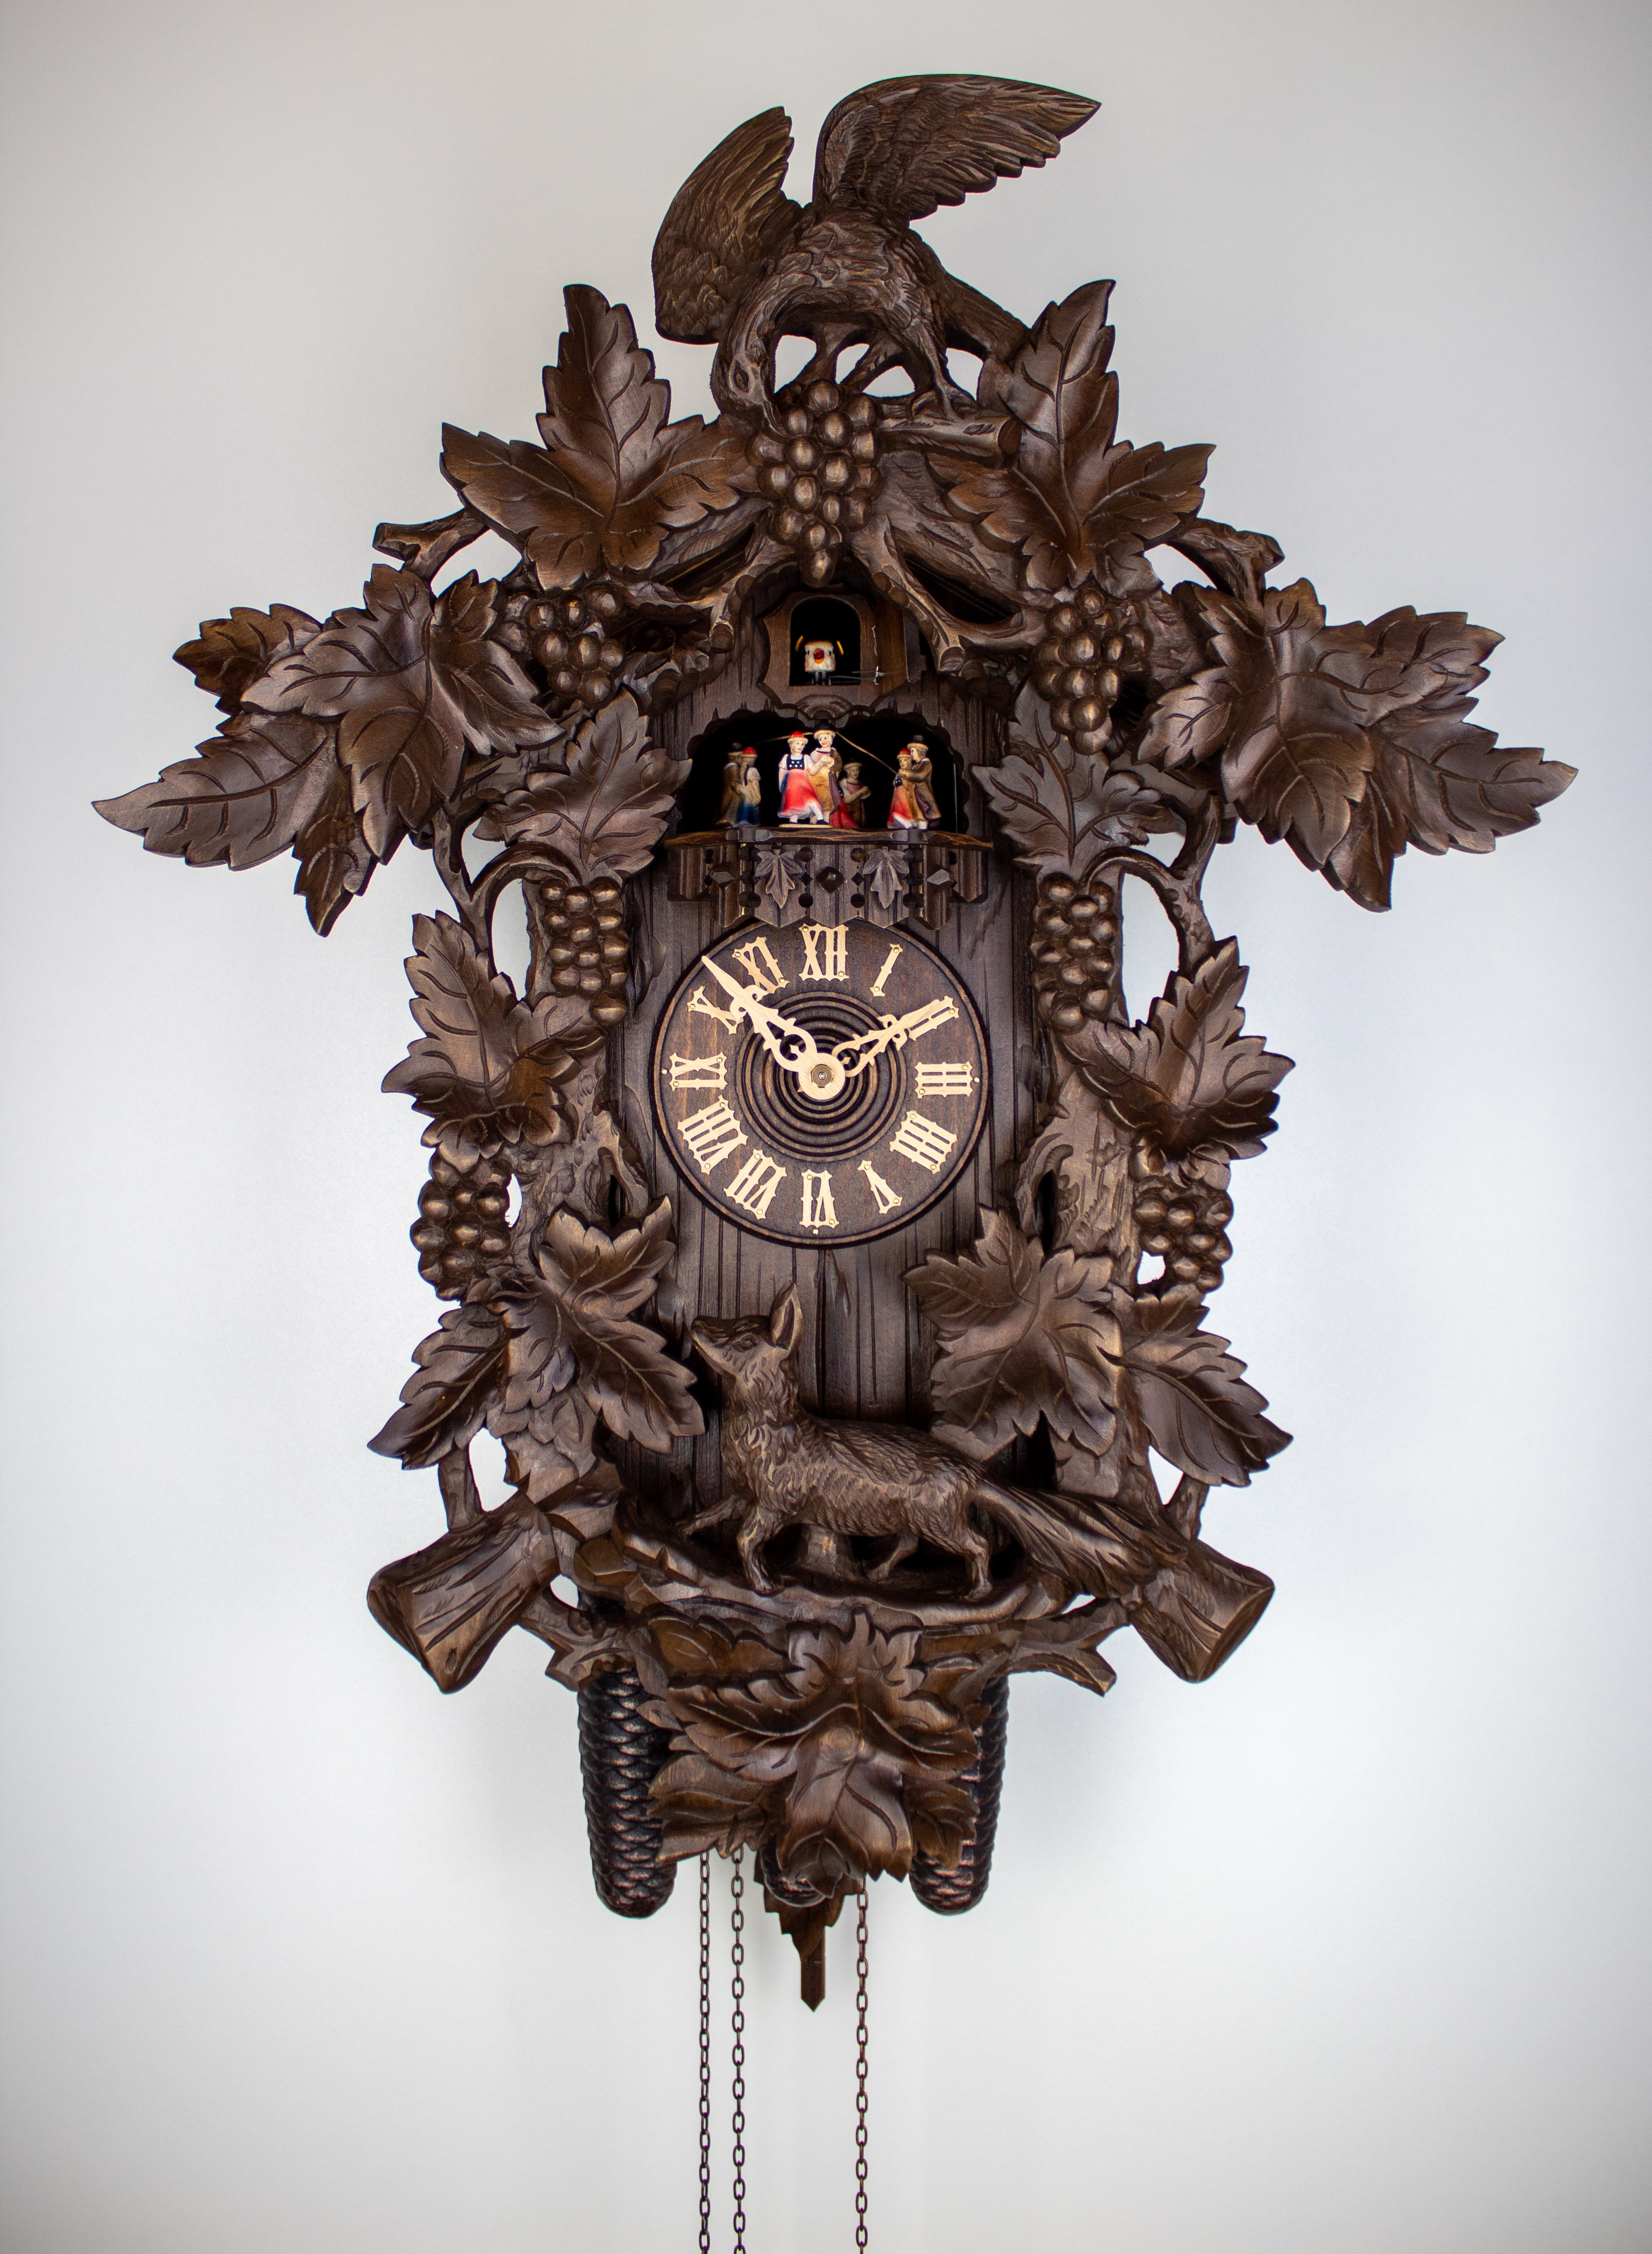 8 Days Music Dancer  Cuckoo Clock with fox and grapes